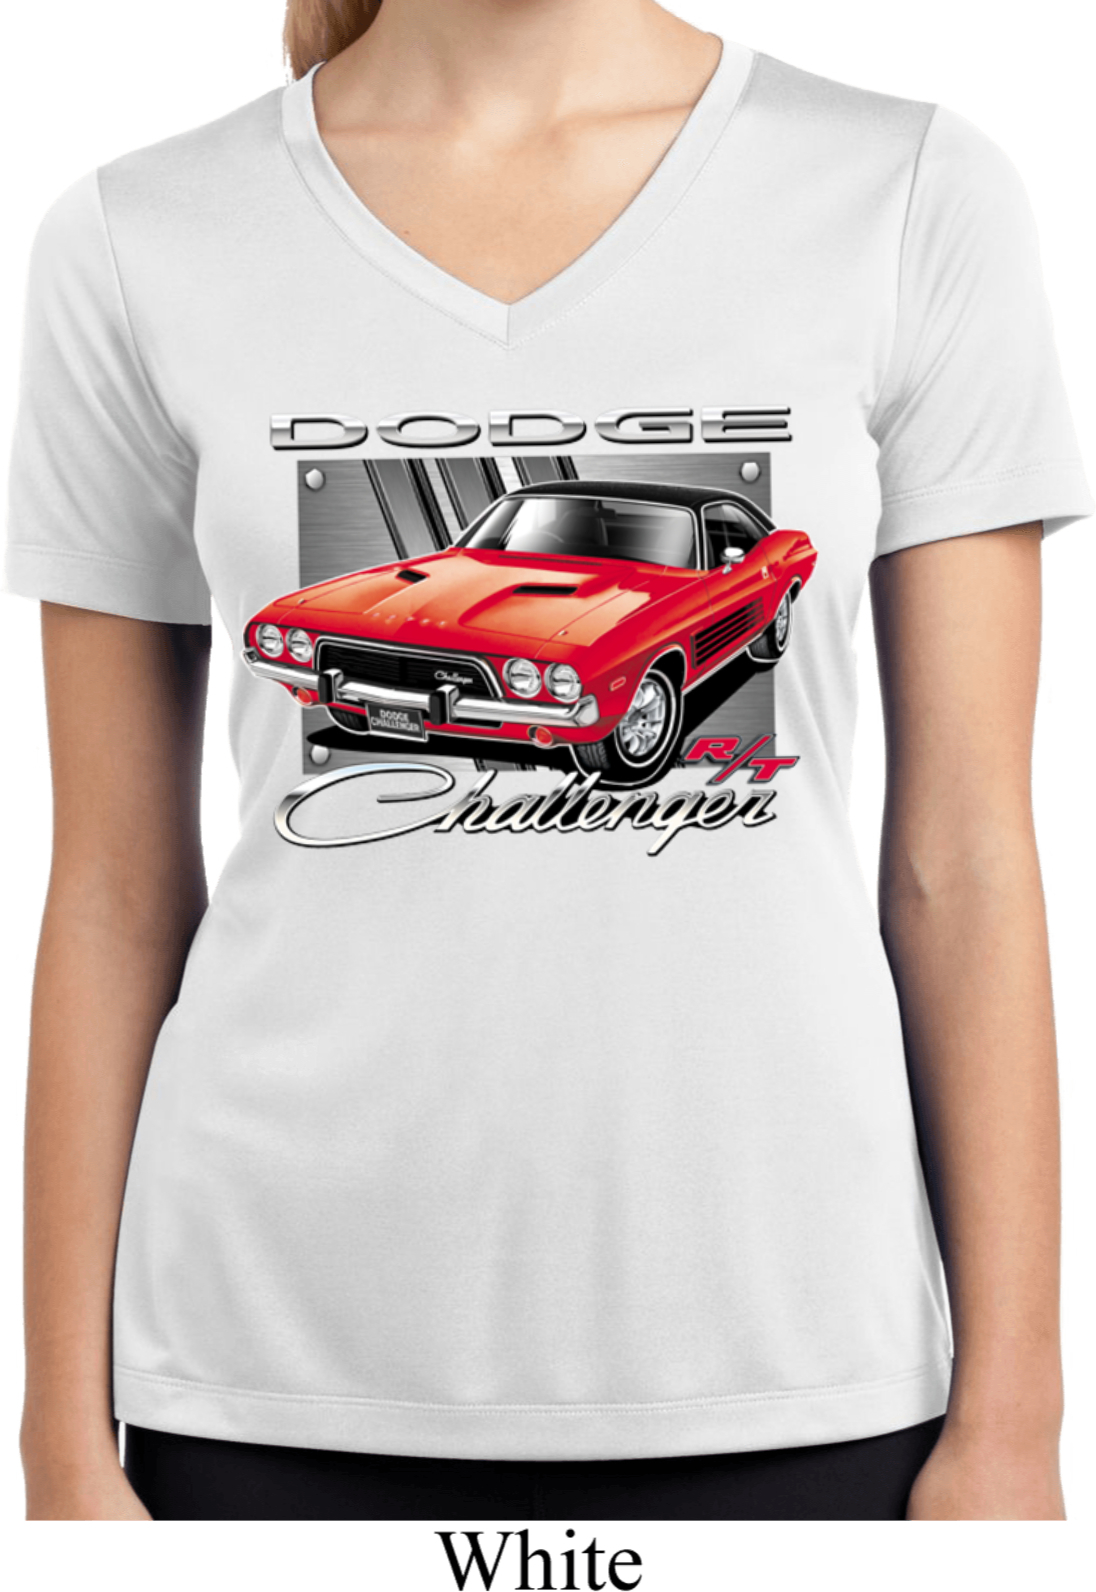 Ladies shirt red challenger white moisture wicking v neck for Sweat wicking t shirts